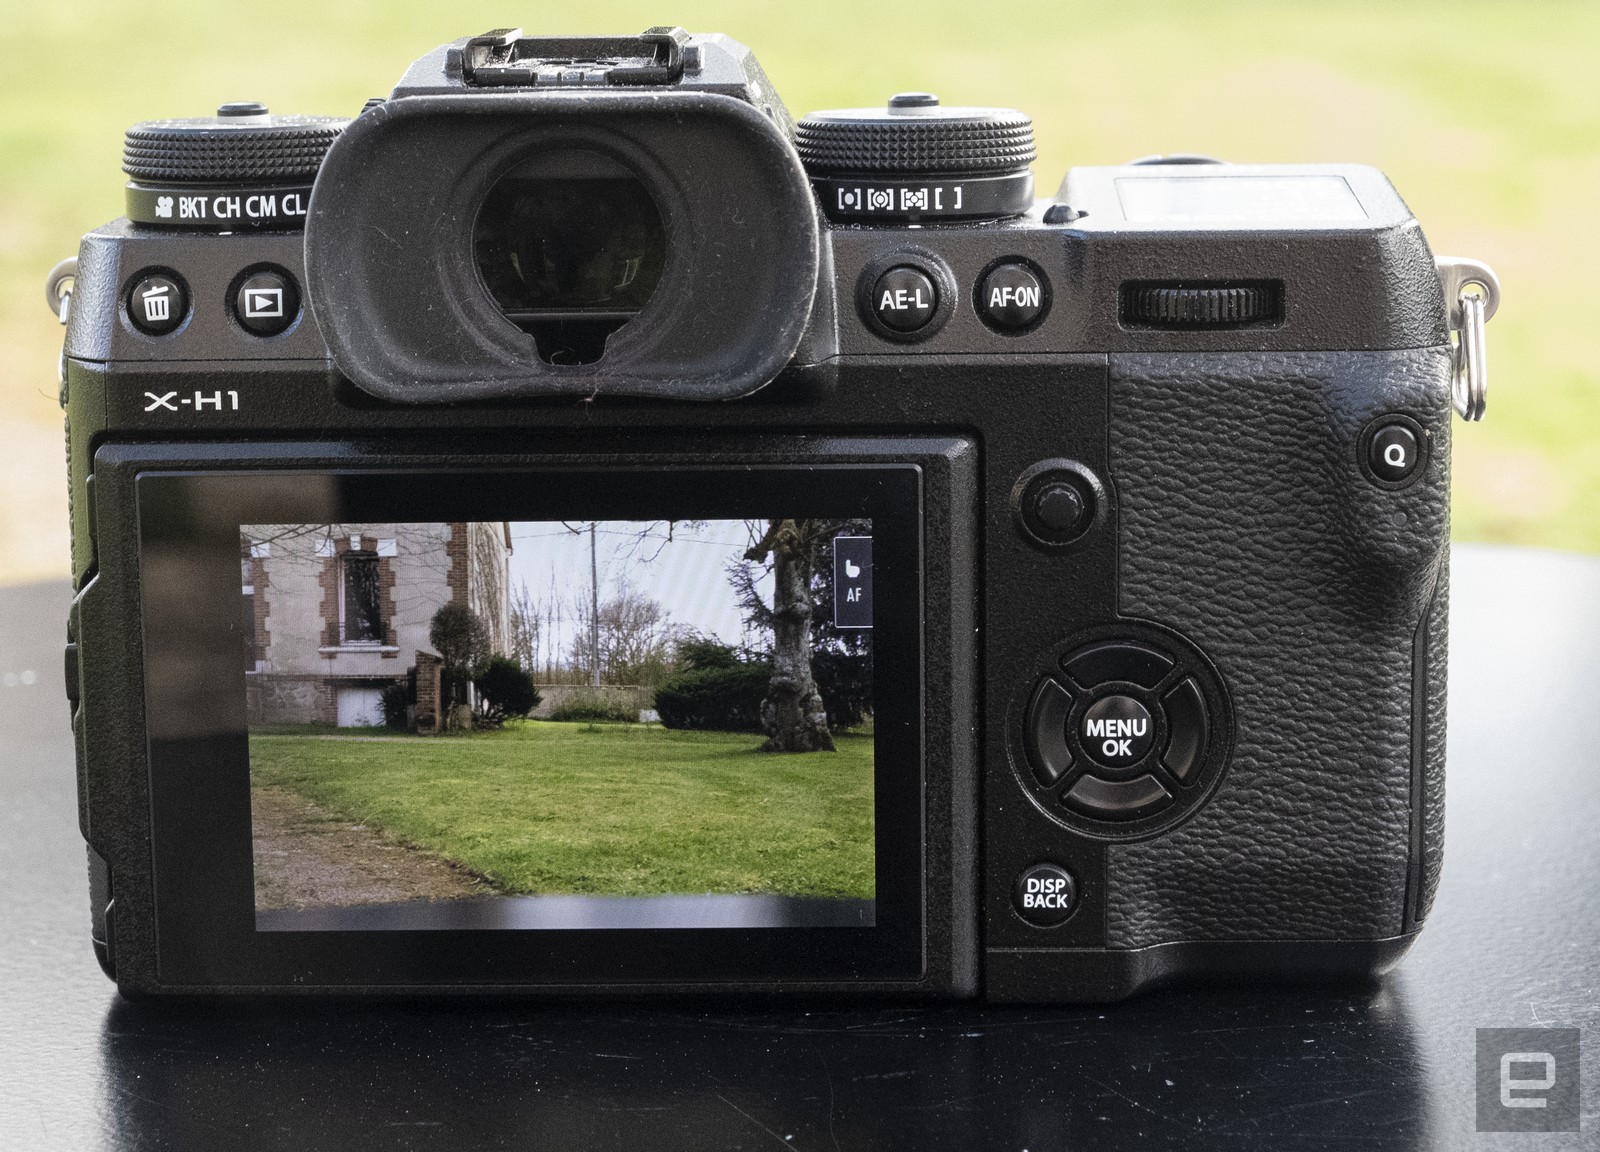 Fujifilm X-H1 review: Beautiful photos, but lacking X-series